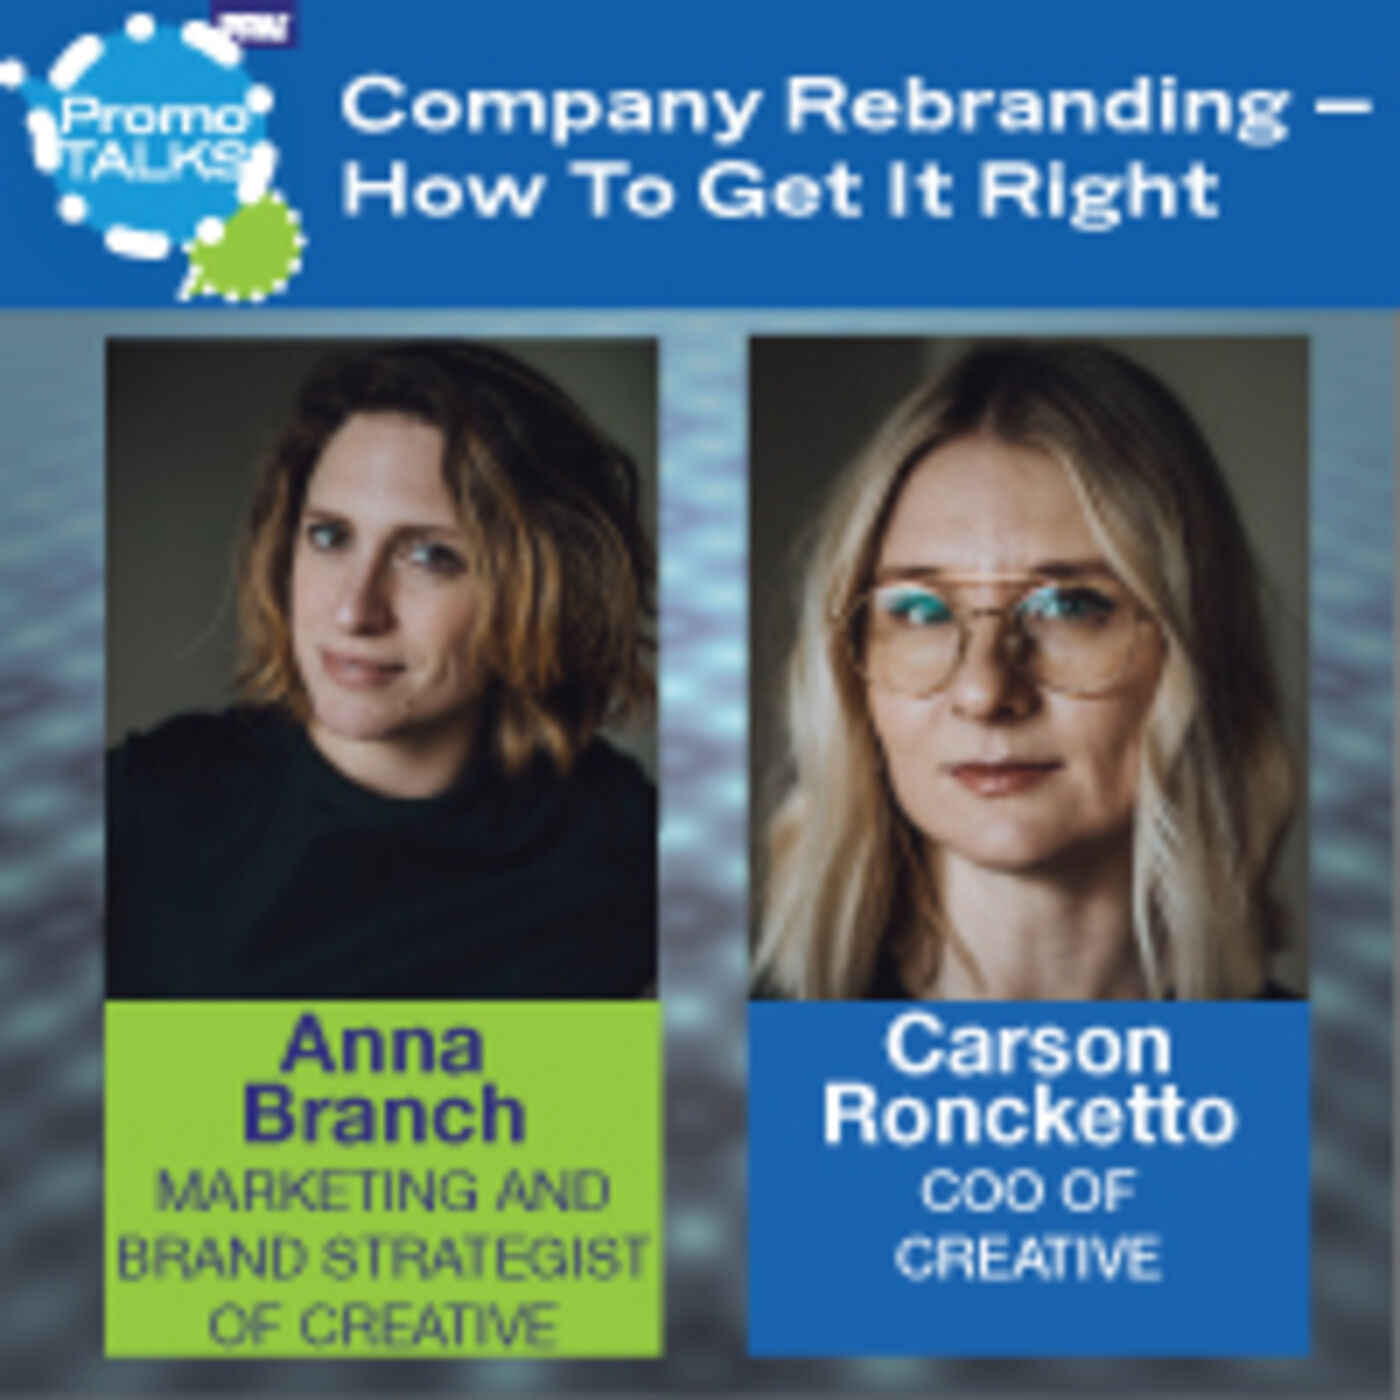 PPB Presents: Company Rebranding - How To Get It Right